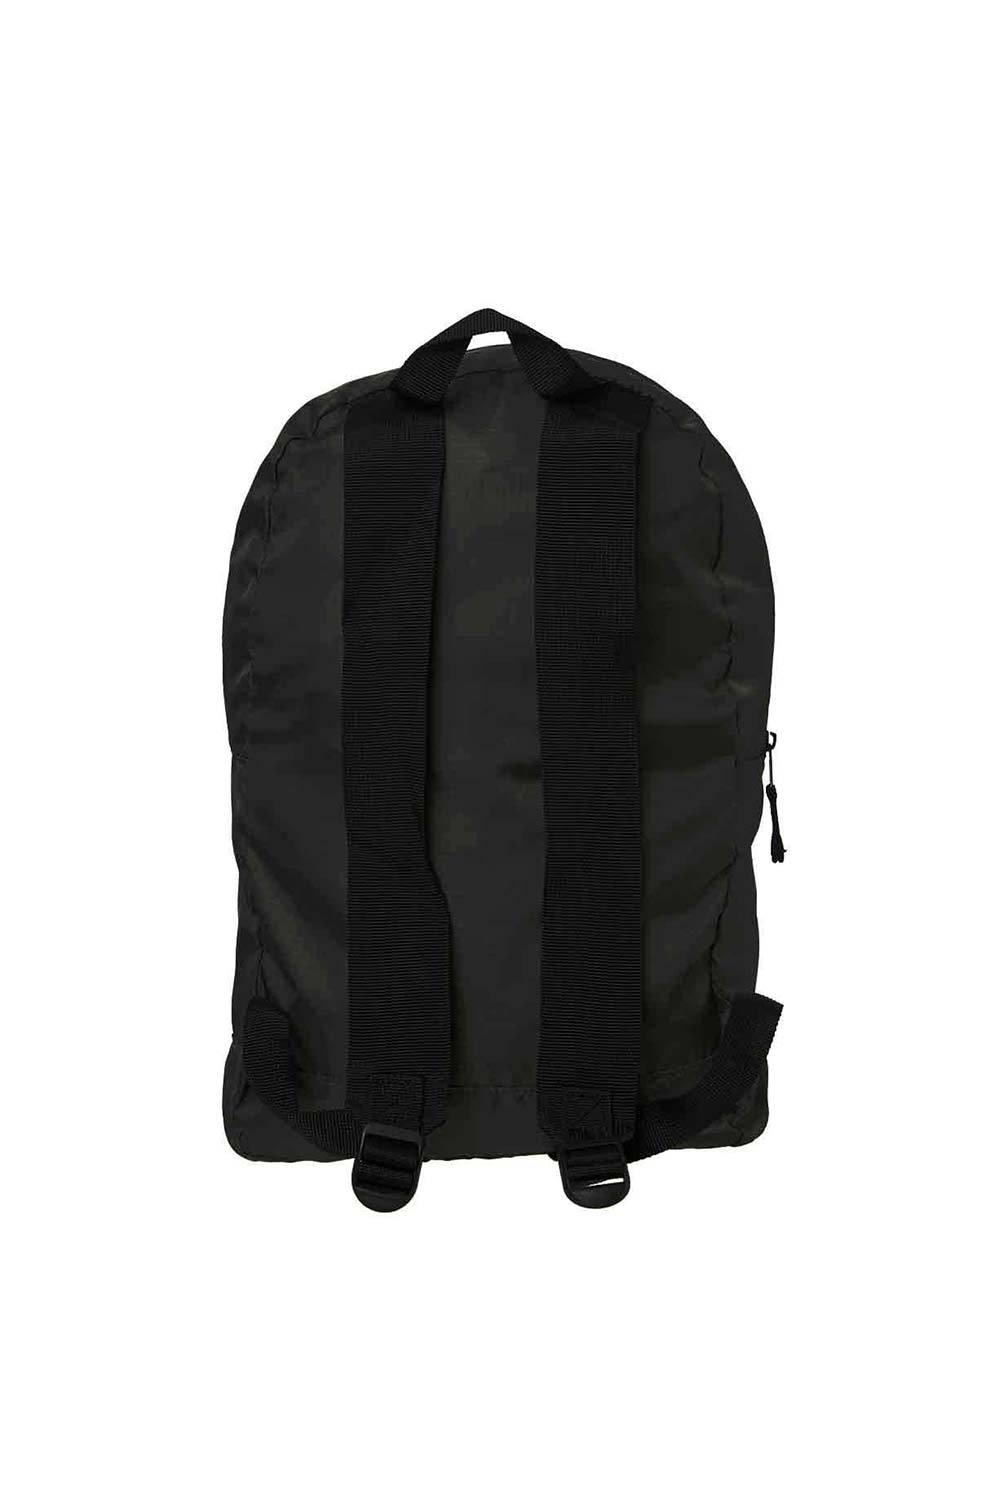 Dickies Carters Lake Backpack